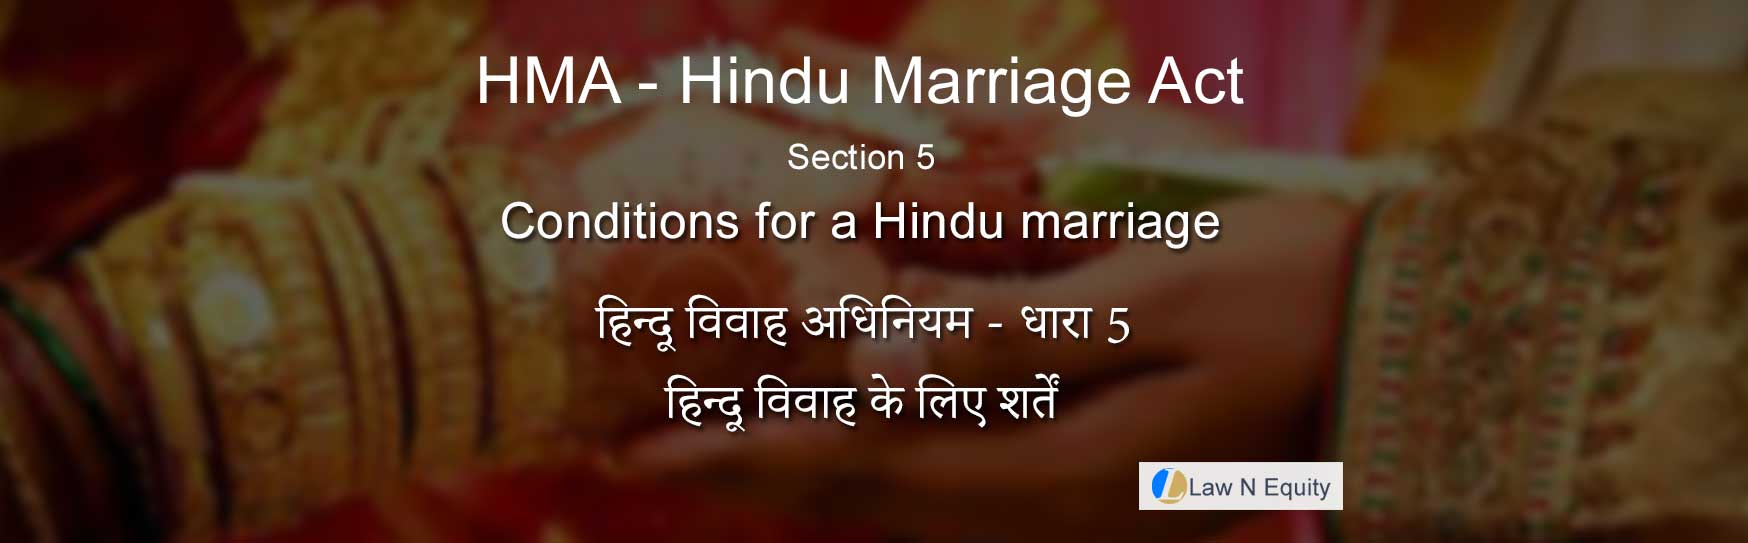 Hindu Marriage Act(HMA) Section 5